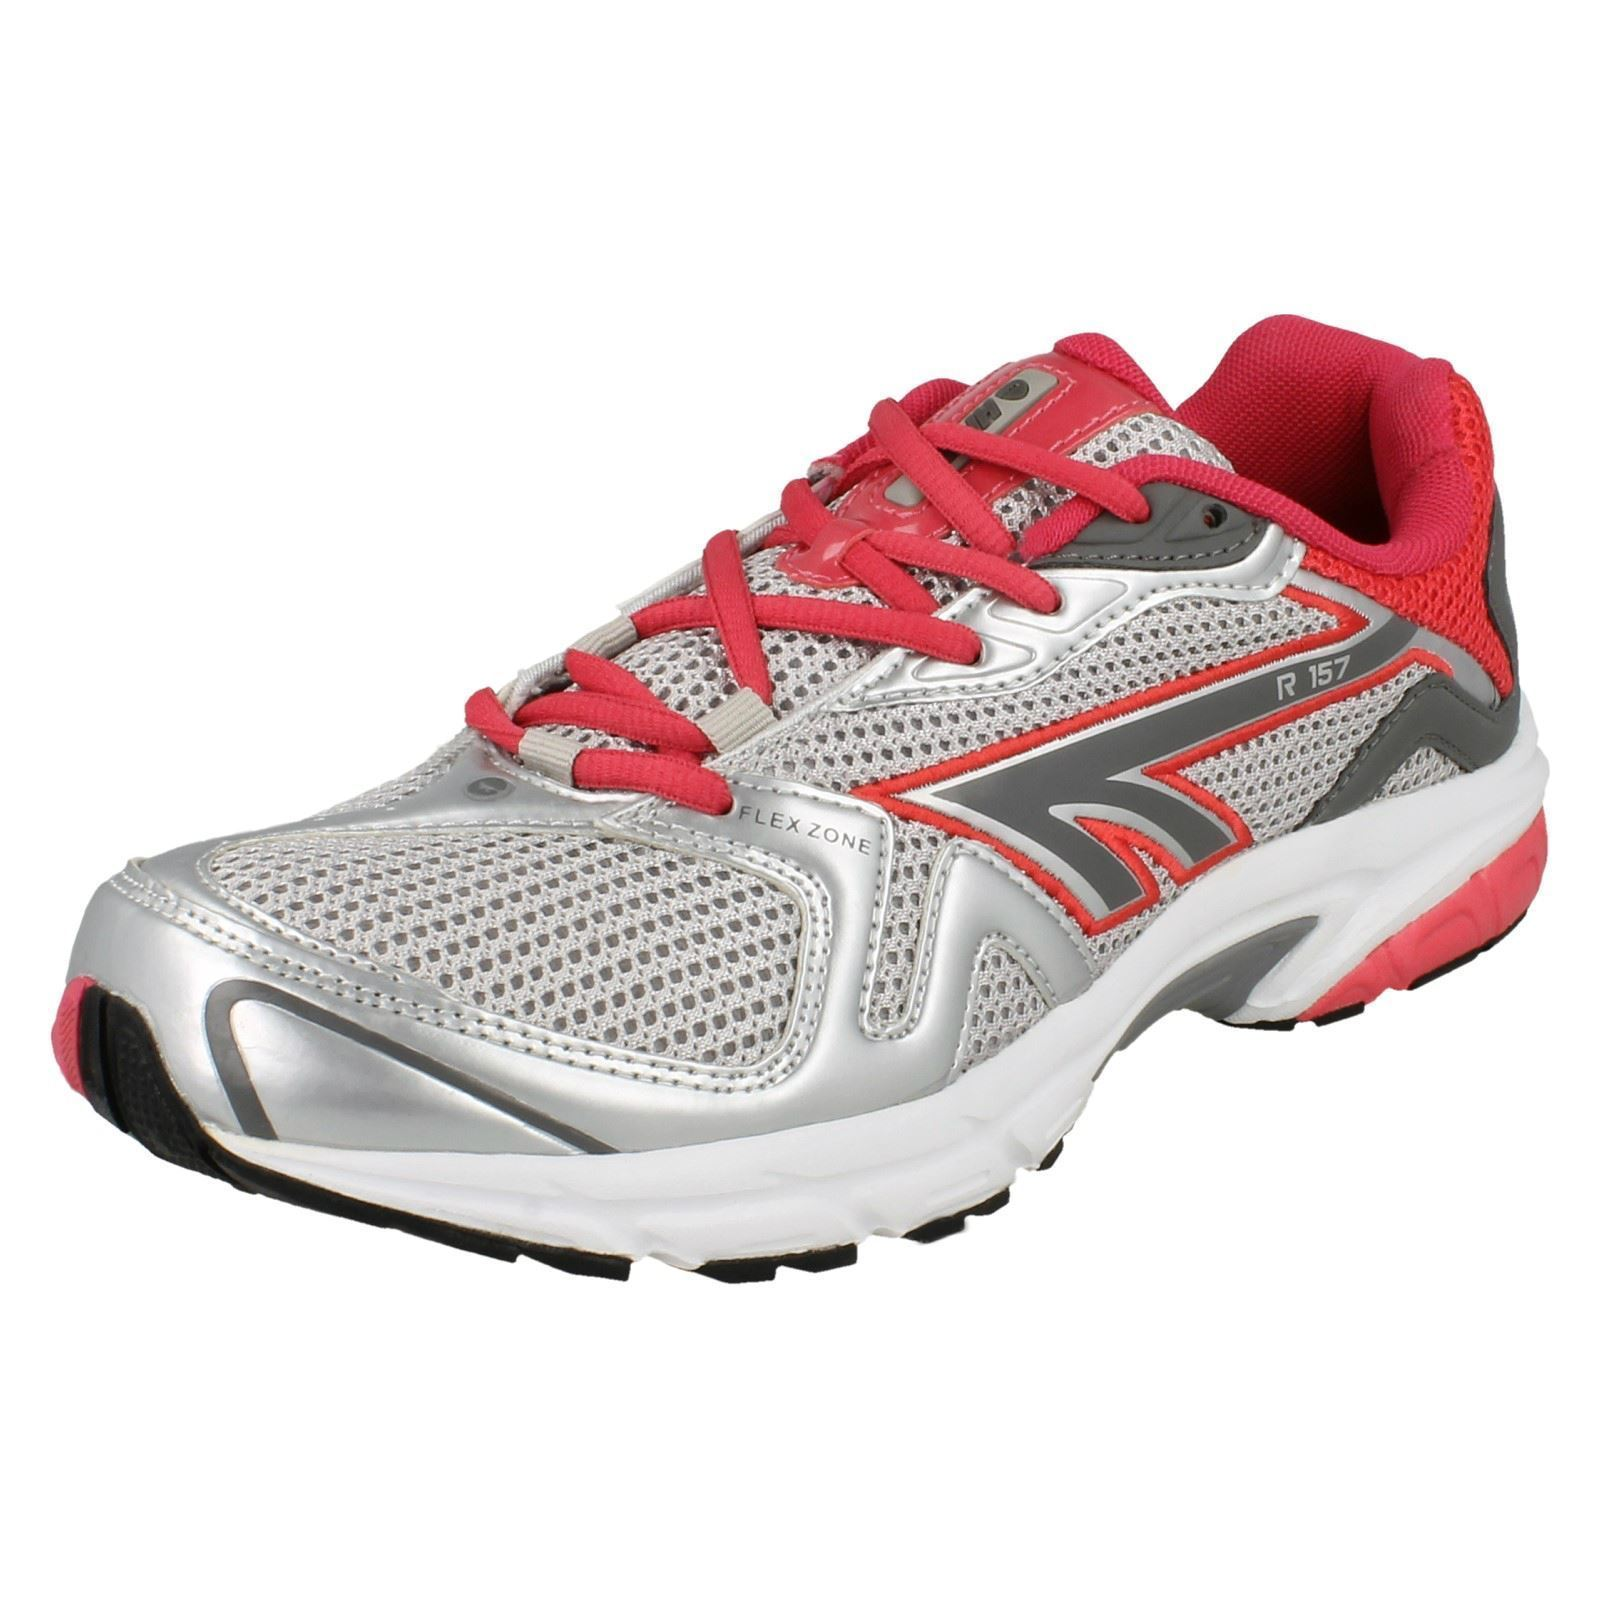 LADIES HI-TEC LACE UP RUNNING TRAINERS SPORTS FITNESS SHOES R157 £9.99